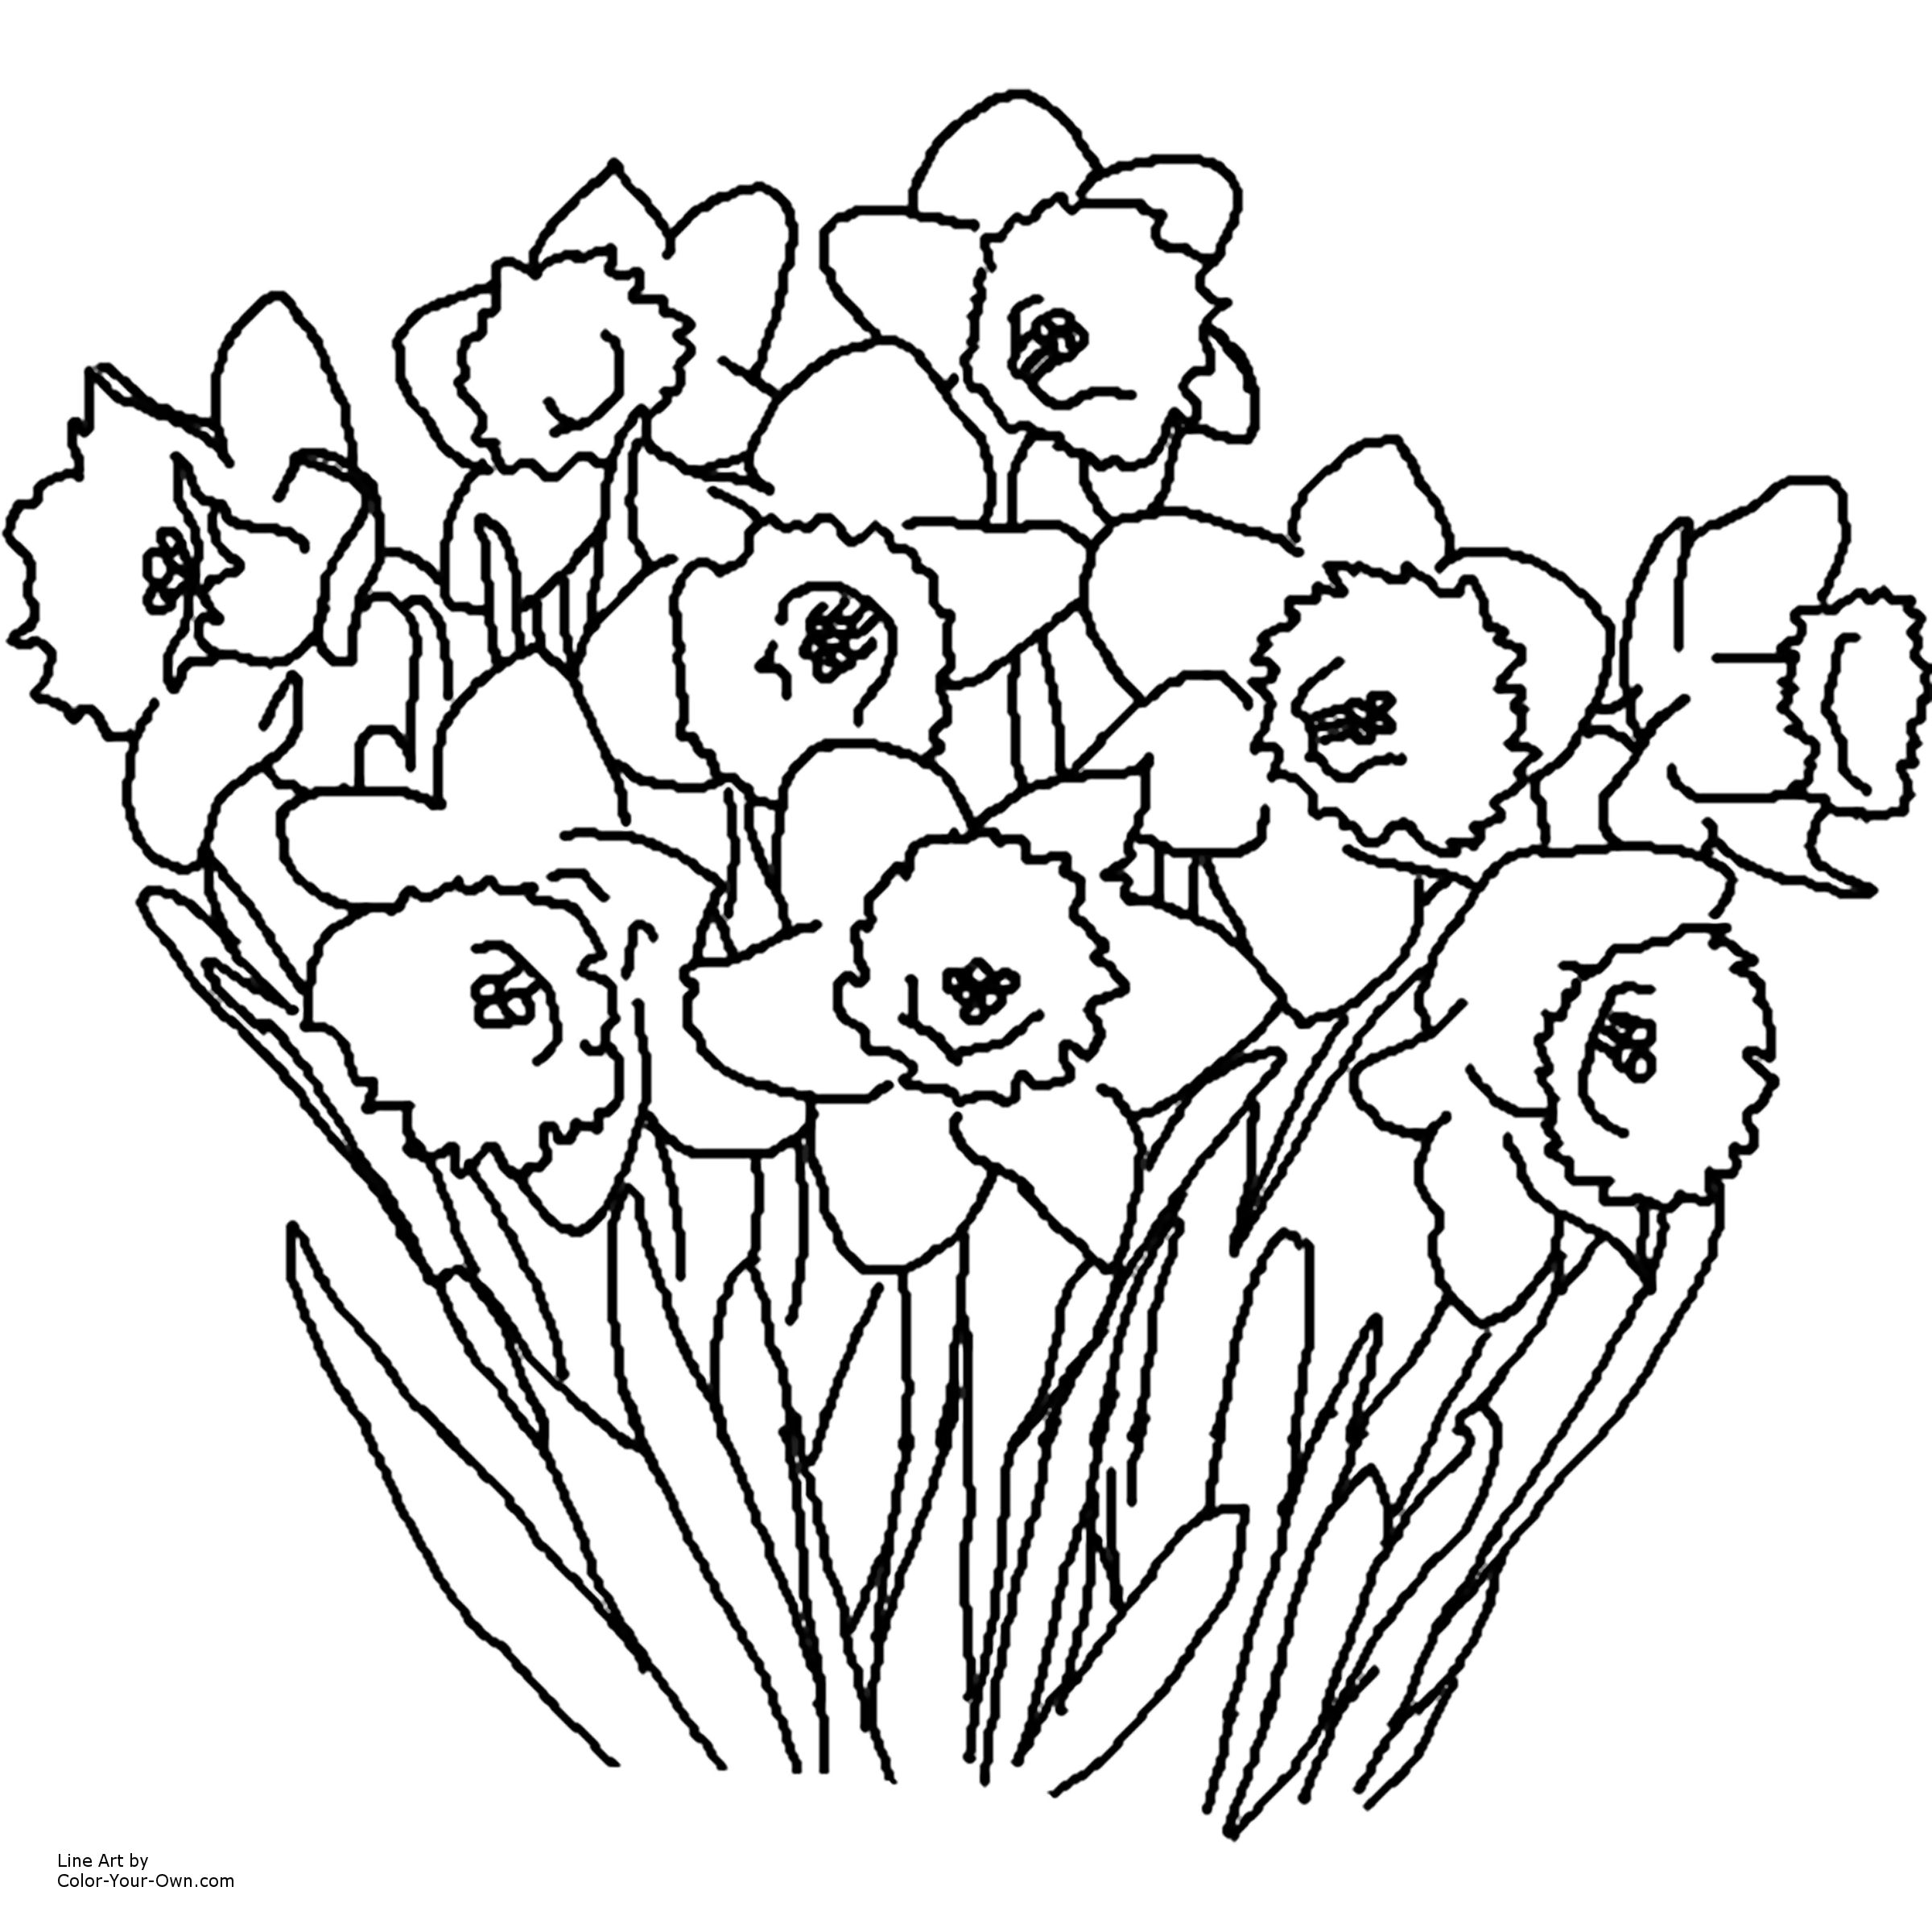 Free Coloring Pages Download Free Clip Art Free Clip Art On Clipart Library